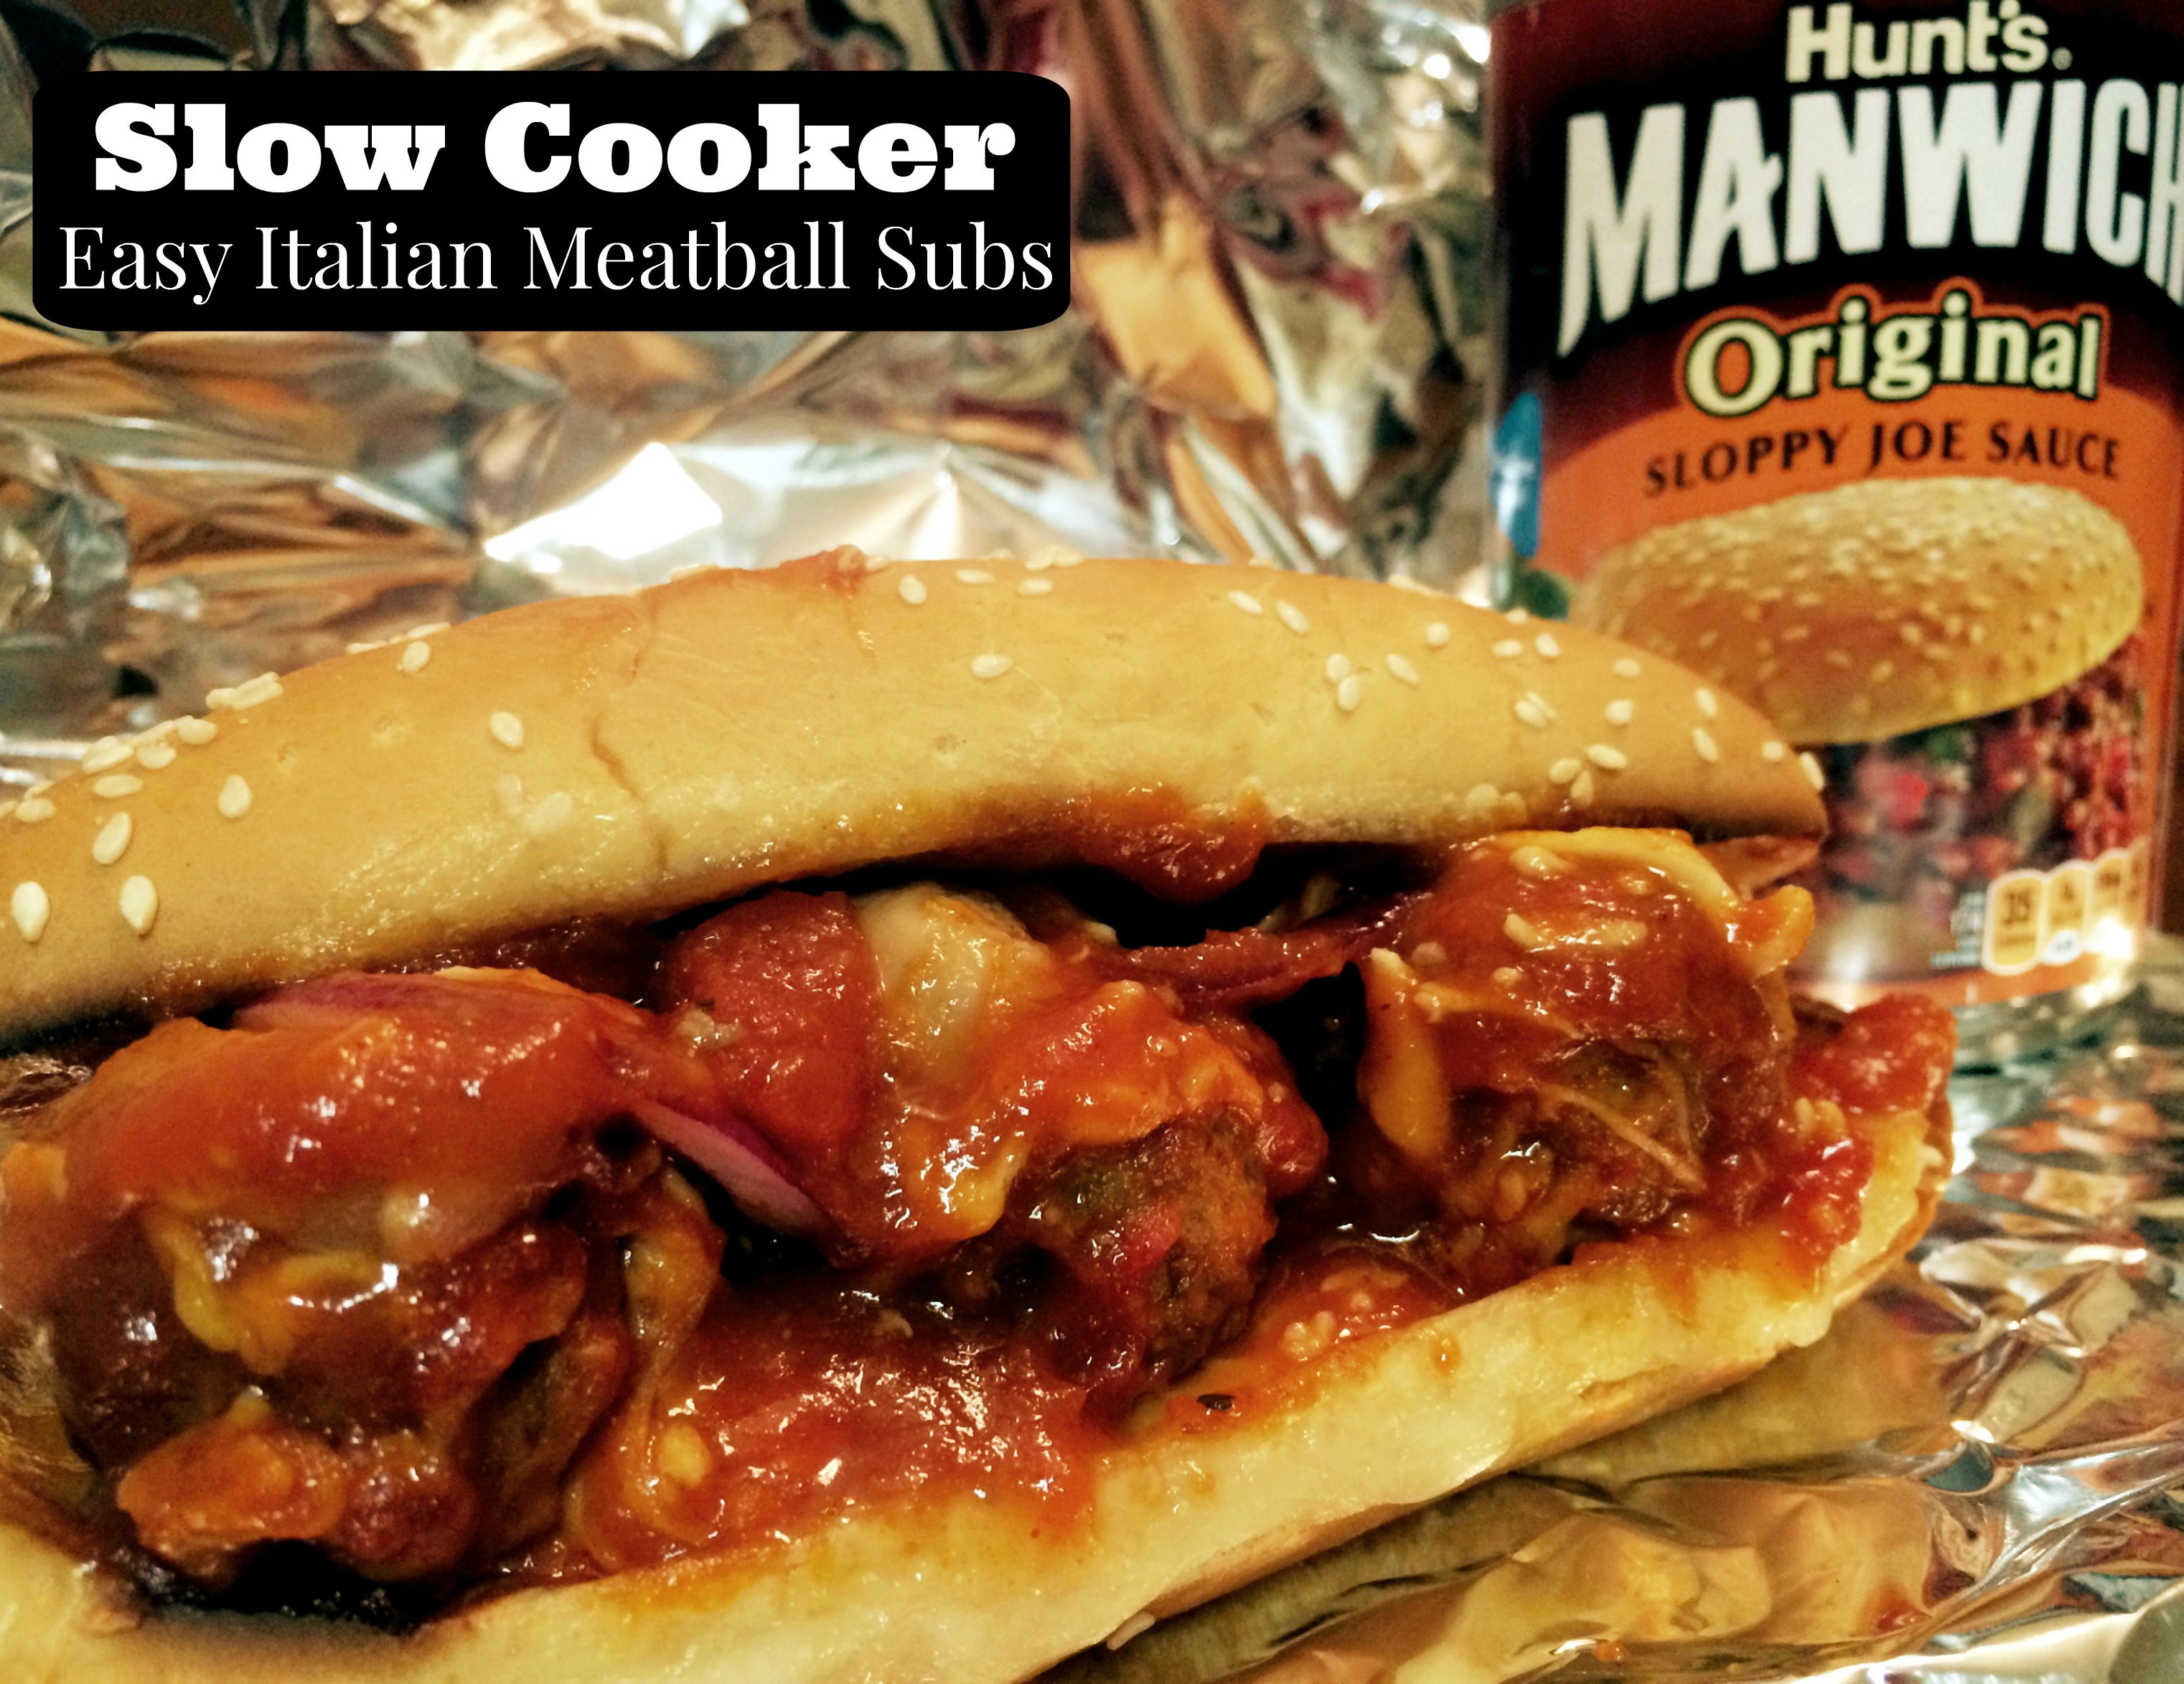 Slow Cooker Easy Italian Meatball Subs